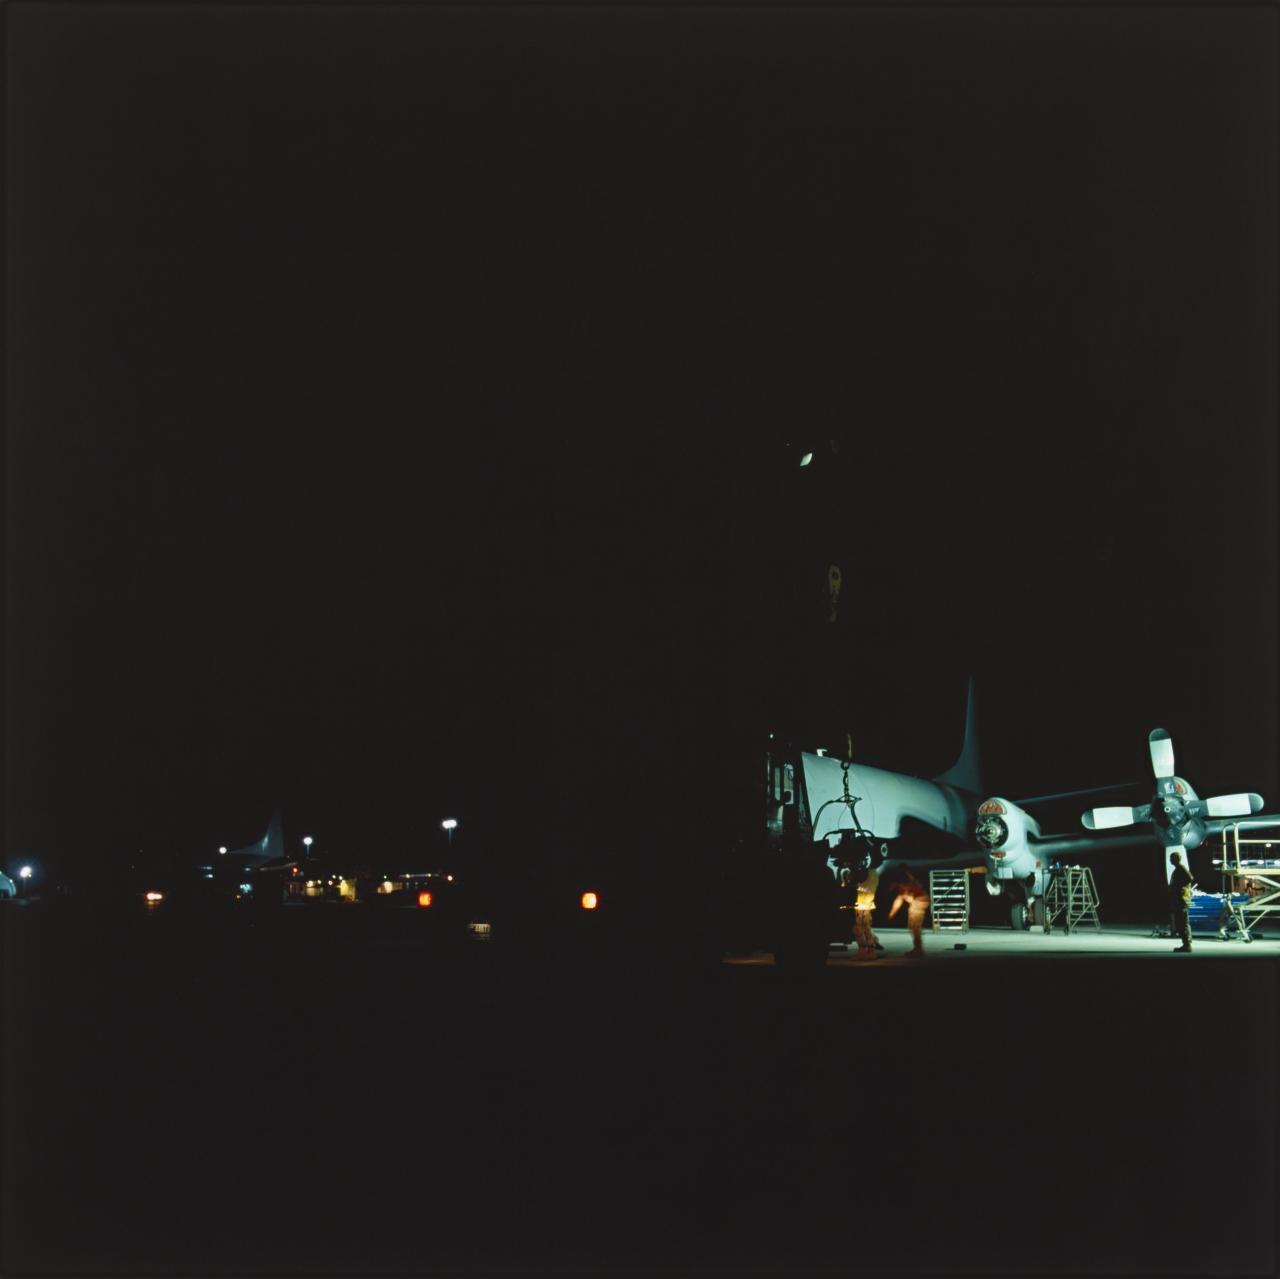 Night with two aircraft on flightline, military installation, Gulf